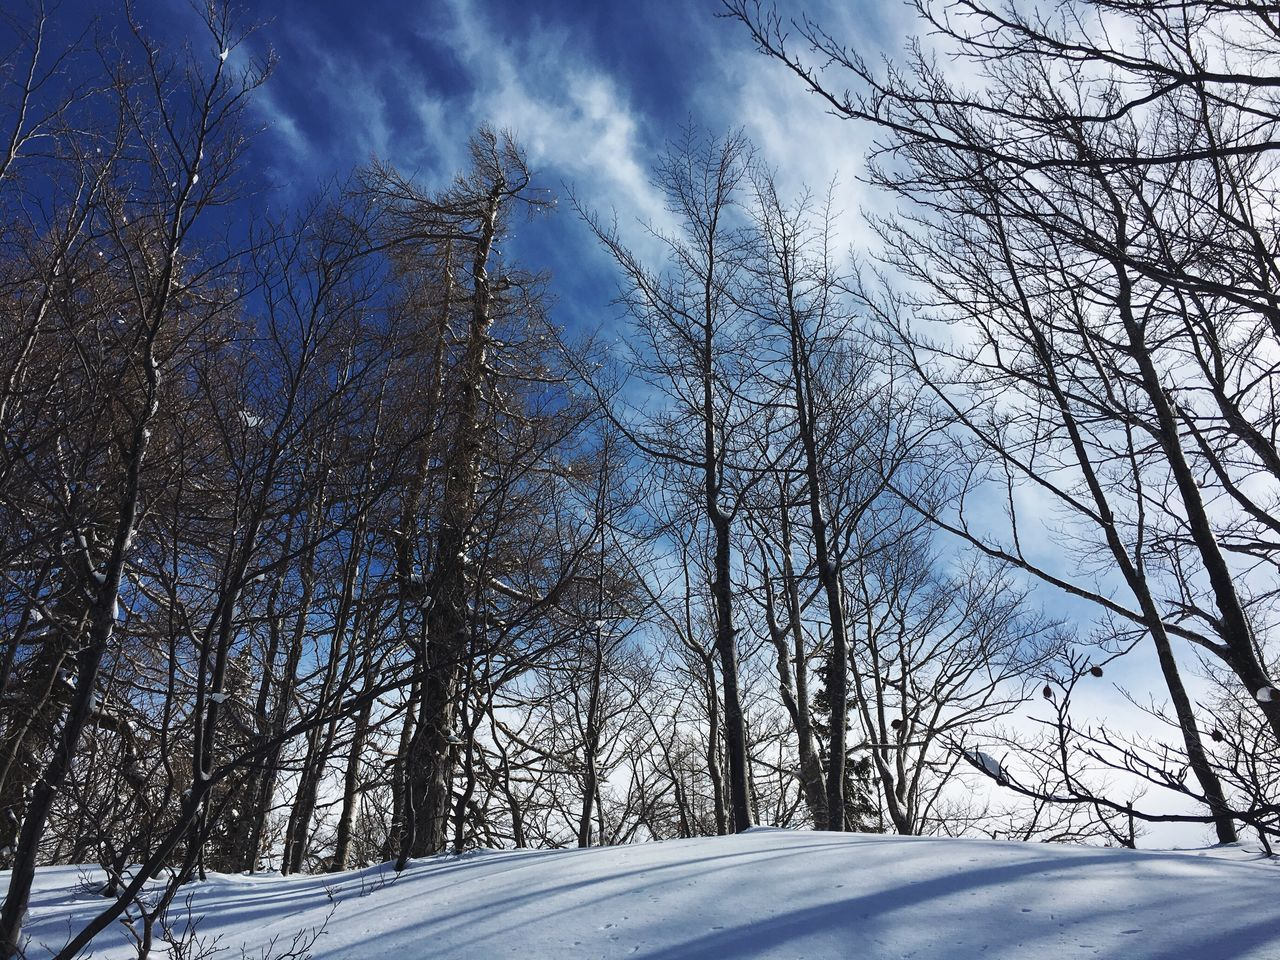 Snow country. Snow Cold Temperature Winter Bare Tree Sky Tree Nature Weather Low Angle View No People Outdoors Beauty In Nature Scenics Cloud - Sky Day Tranquility